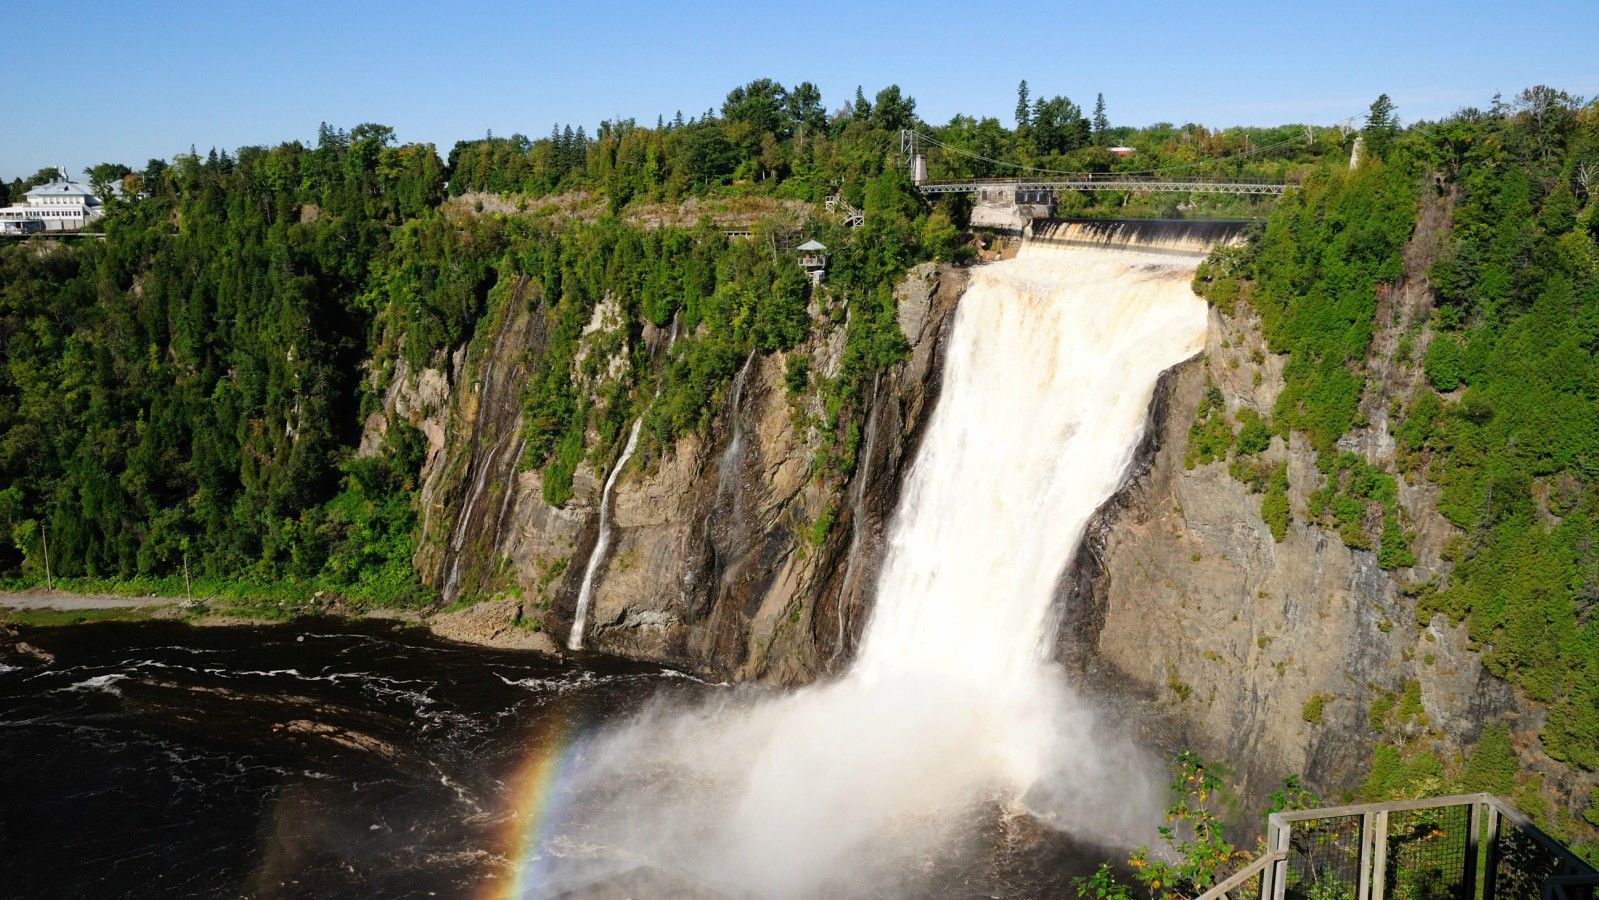 Hotels near Montmorency Falls | Hotel PUR, Quebec, a Tribute Portfolio Hotel